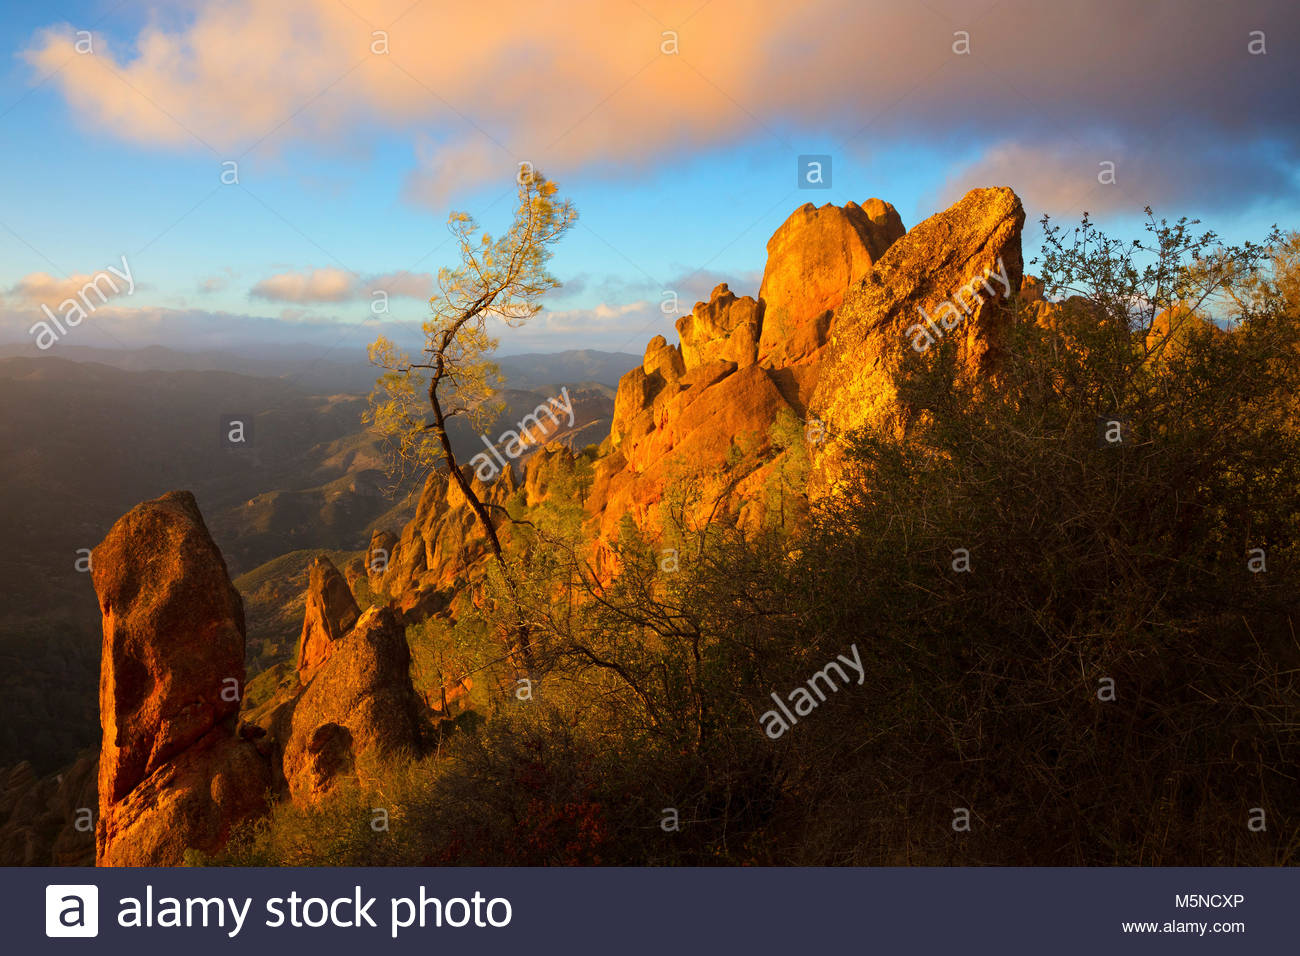 The golden light of sunset highlights the harsh environment near the summit of the High Peaks in Pinnacles National - Stock Image